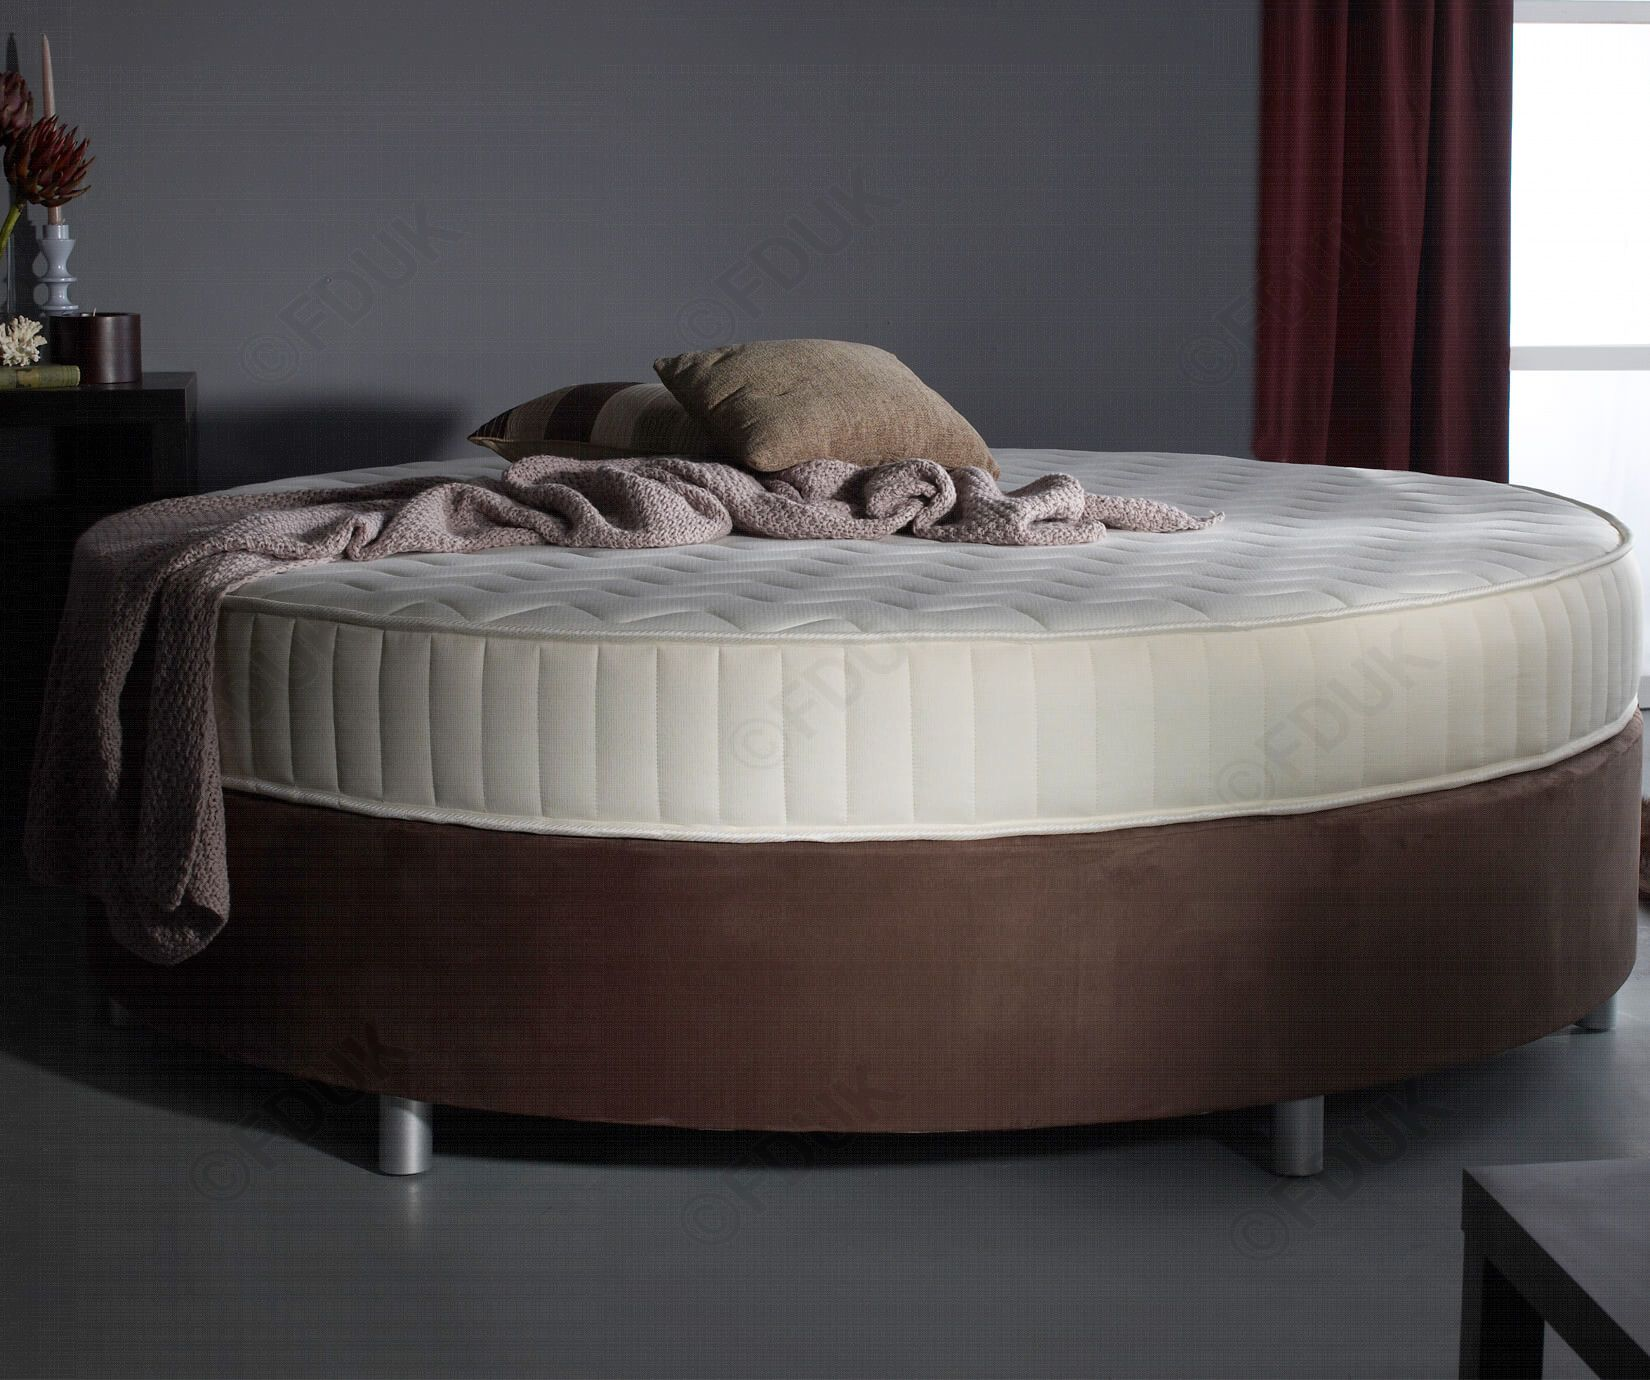 FD Essential Verve Round Bed Frame FDUK BEST PRICE